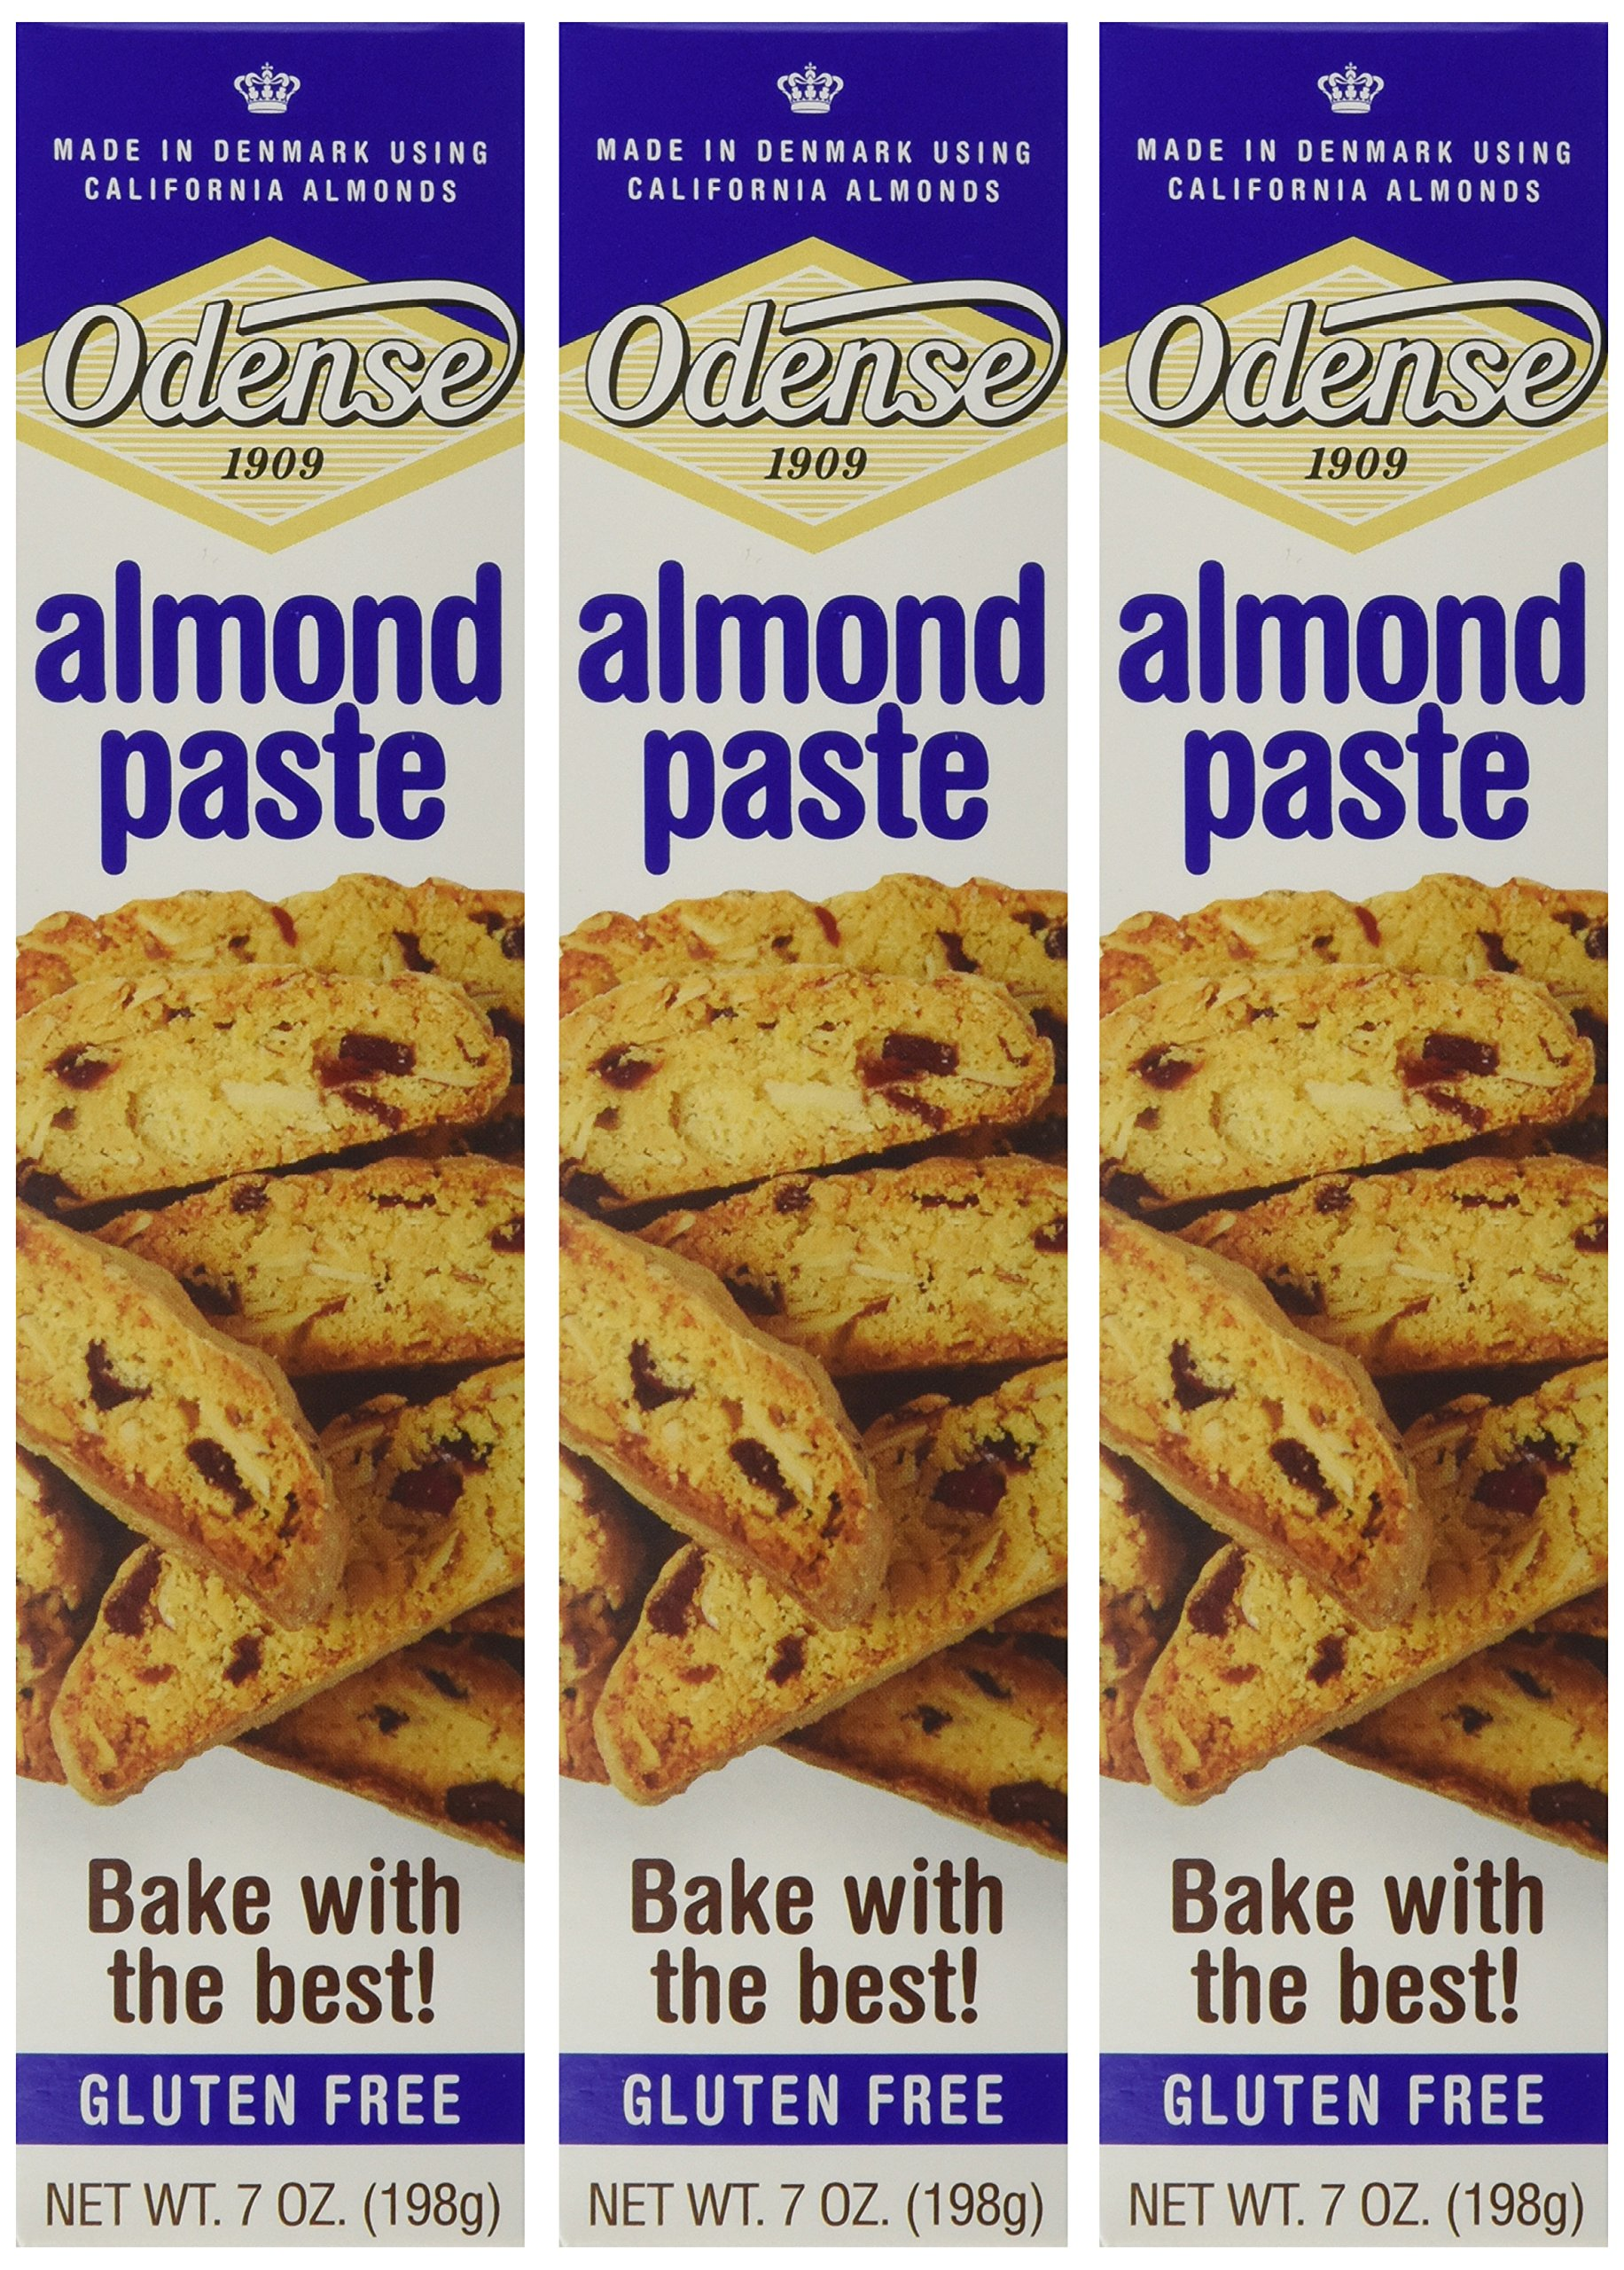 Odense Almond Paste - 3 Pack Value Bundle by Odense (Image #1)